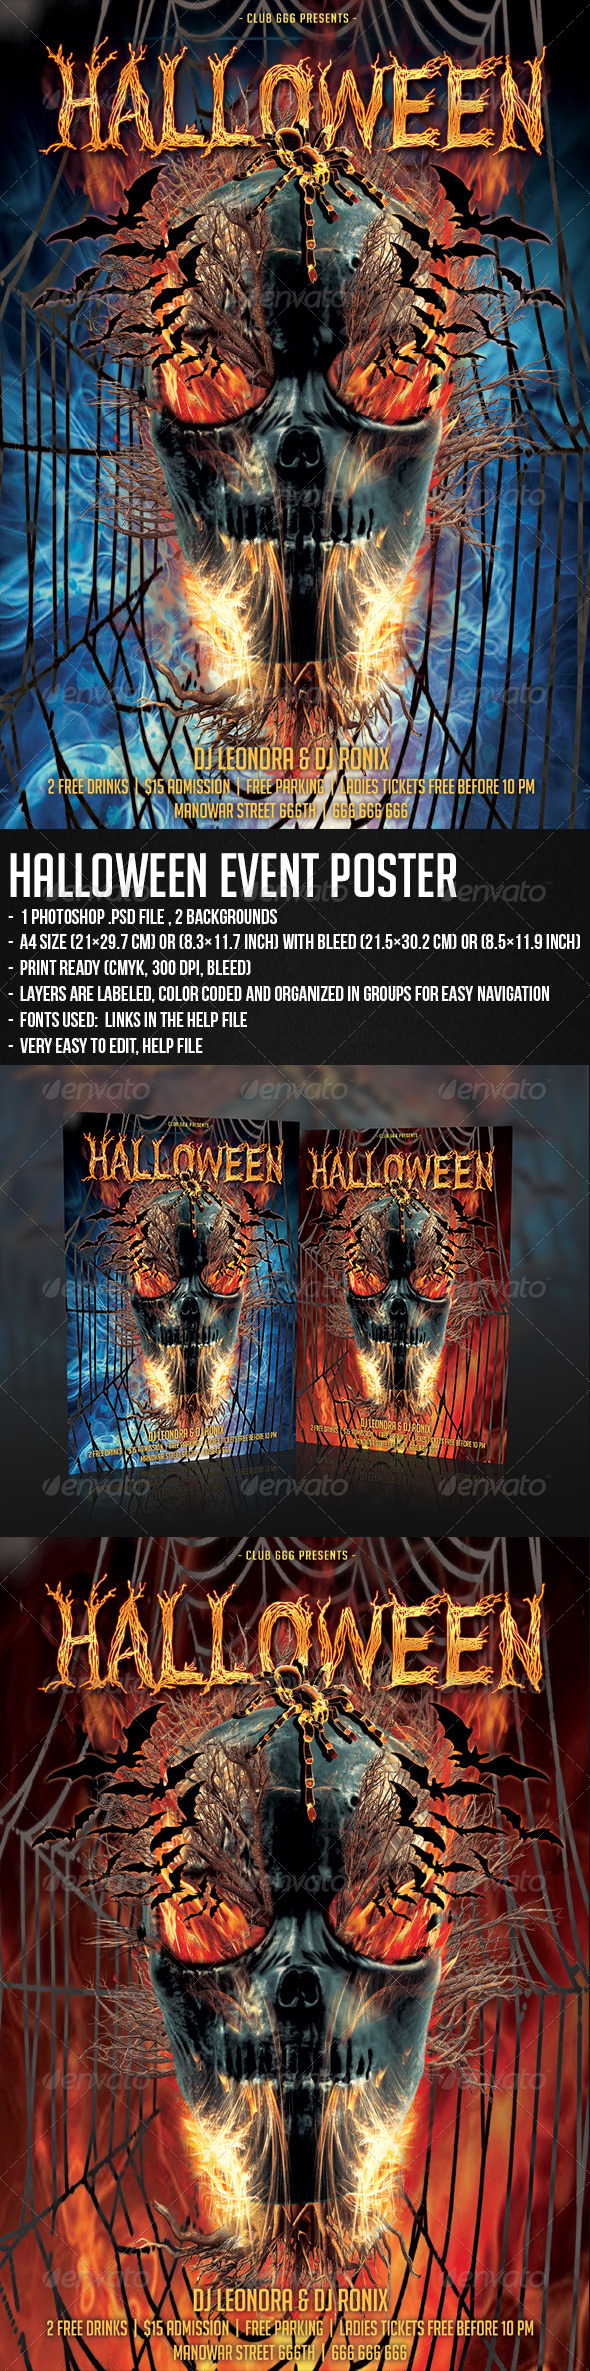 GraphicRiver Halloween Event Poster 5518239